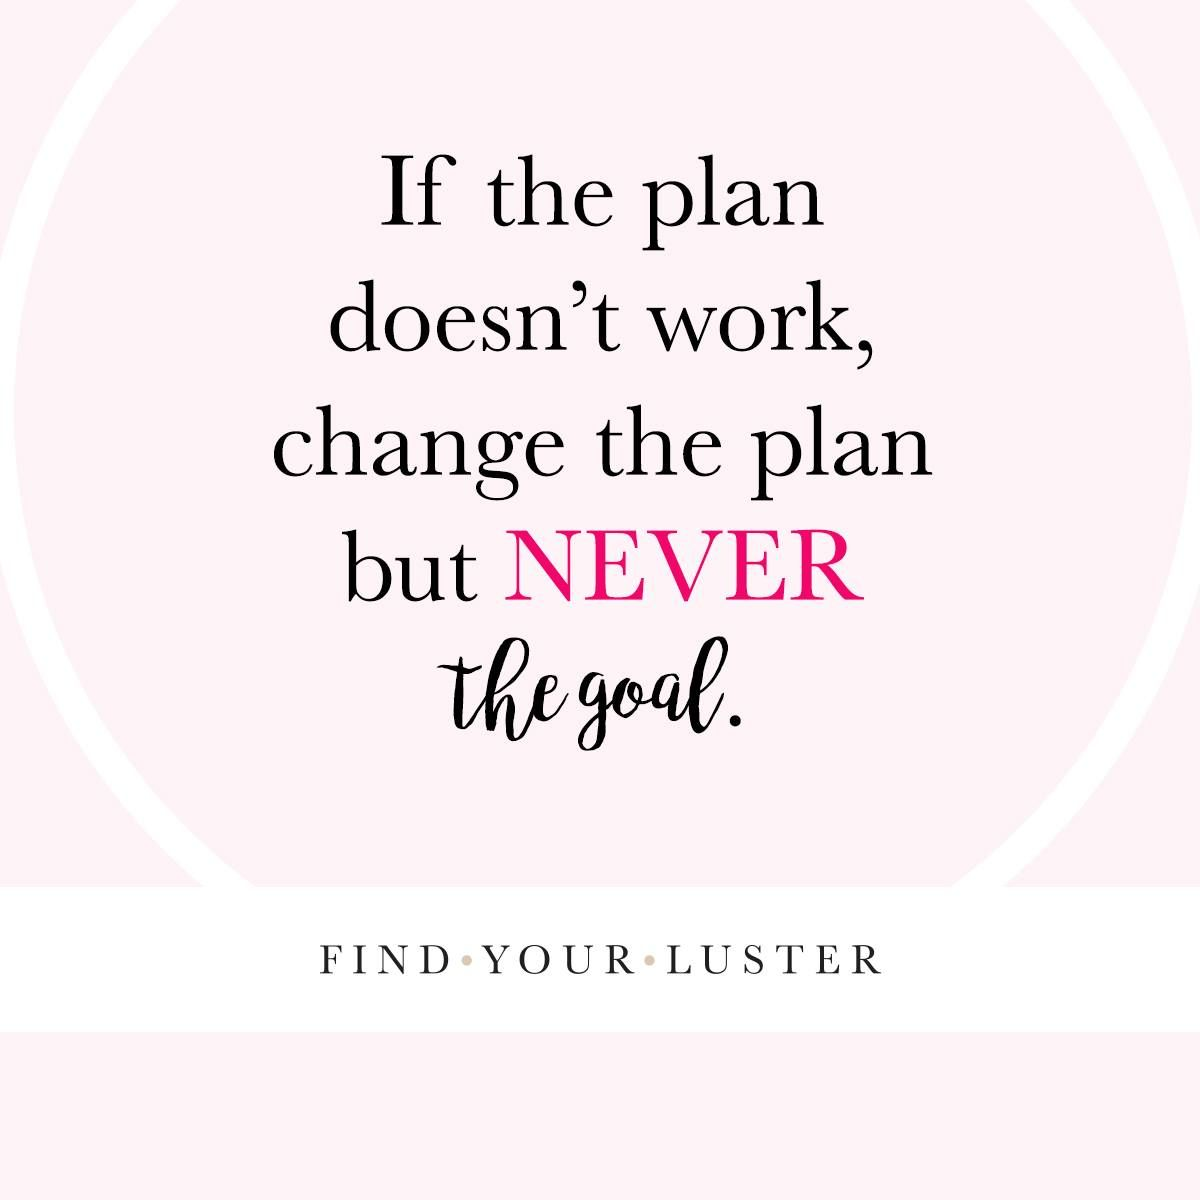 The harder the struggle the more glorious the triumph! Never give up on the things you really want. #FindYourLuster #HonoraPearls #PearlsThatGoWith #MondayMotivation